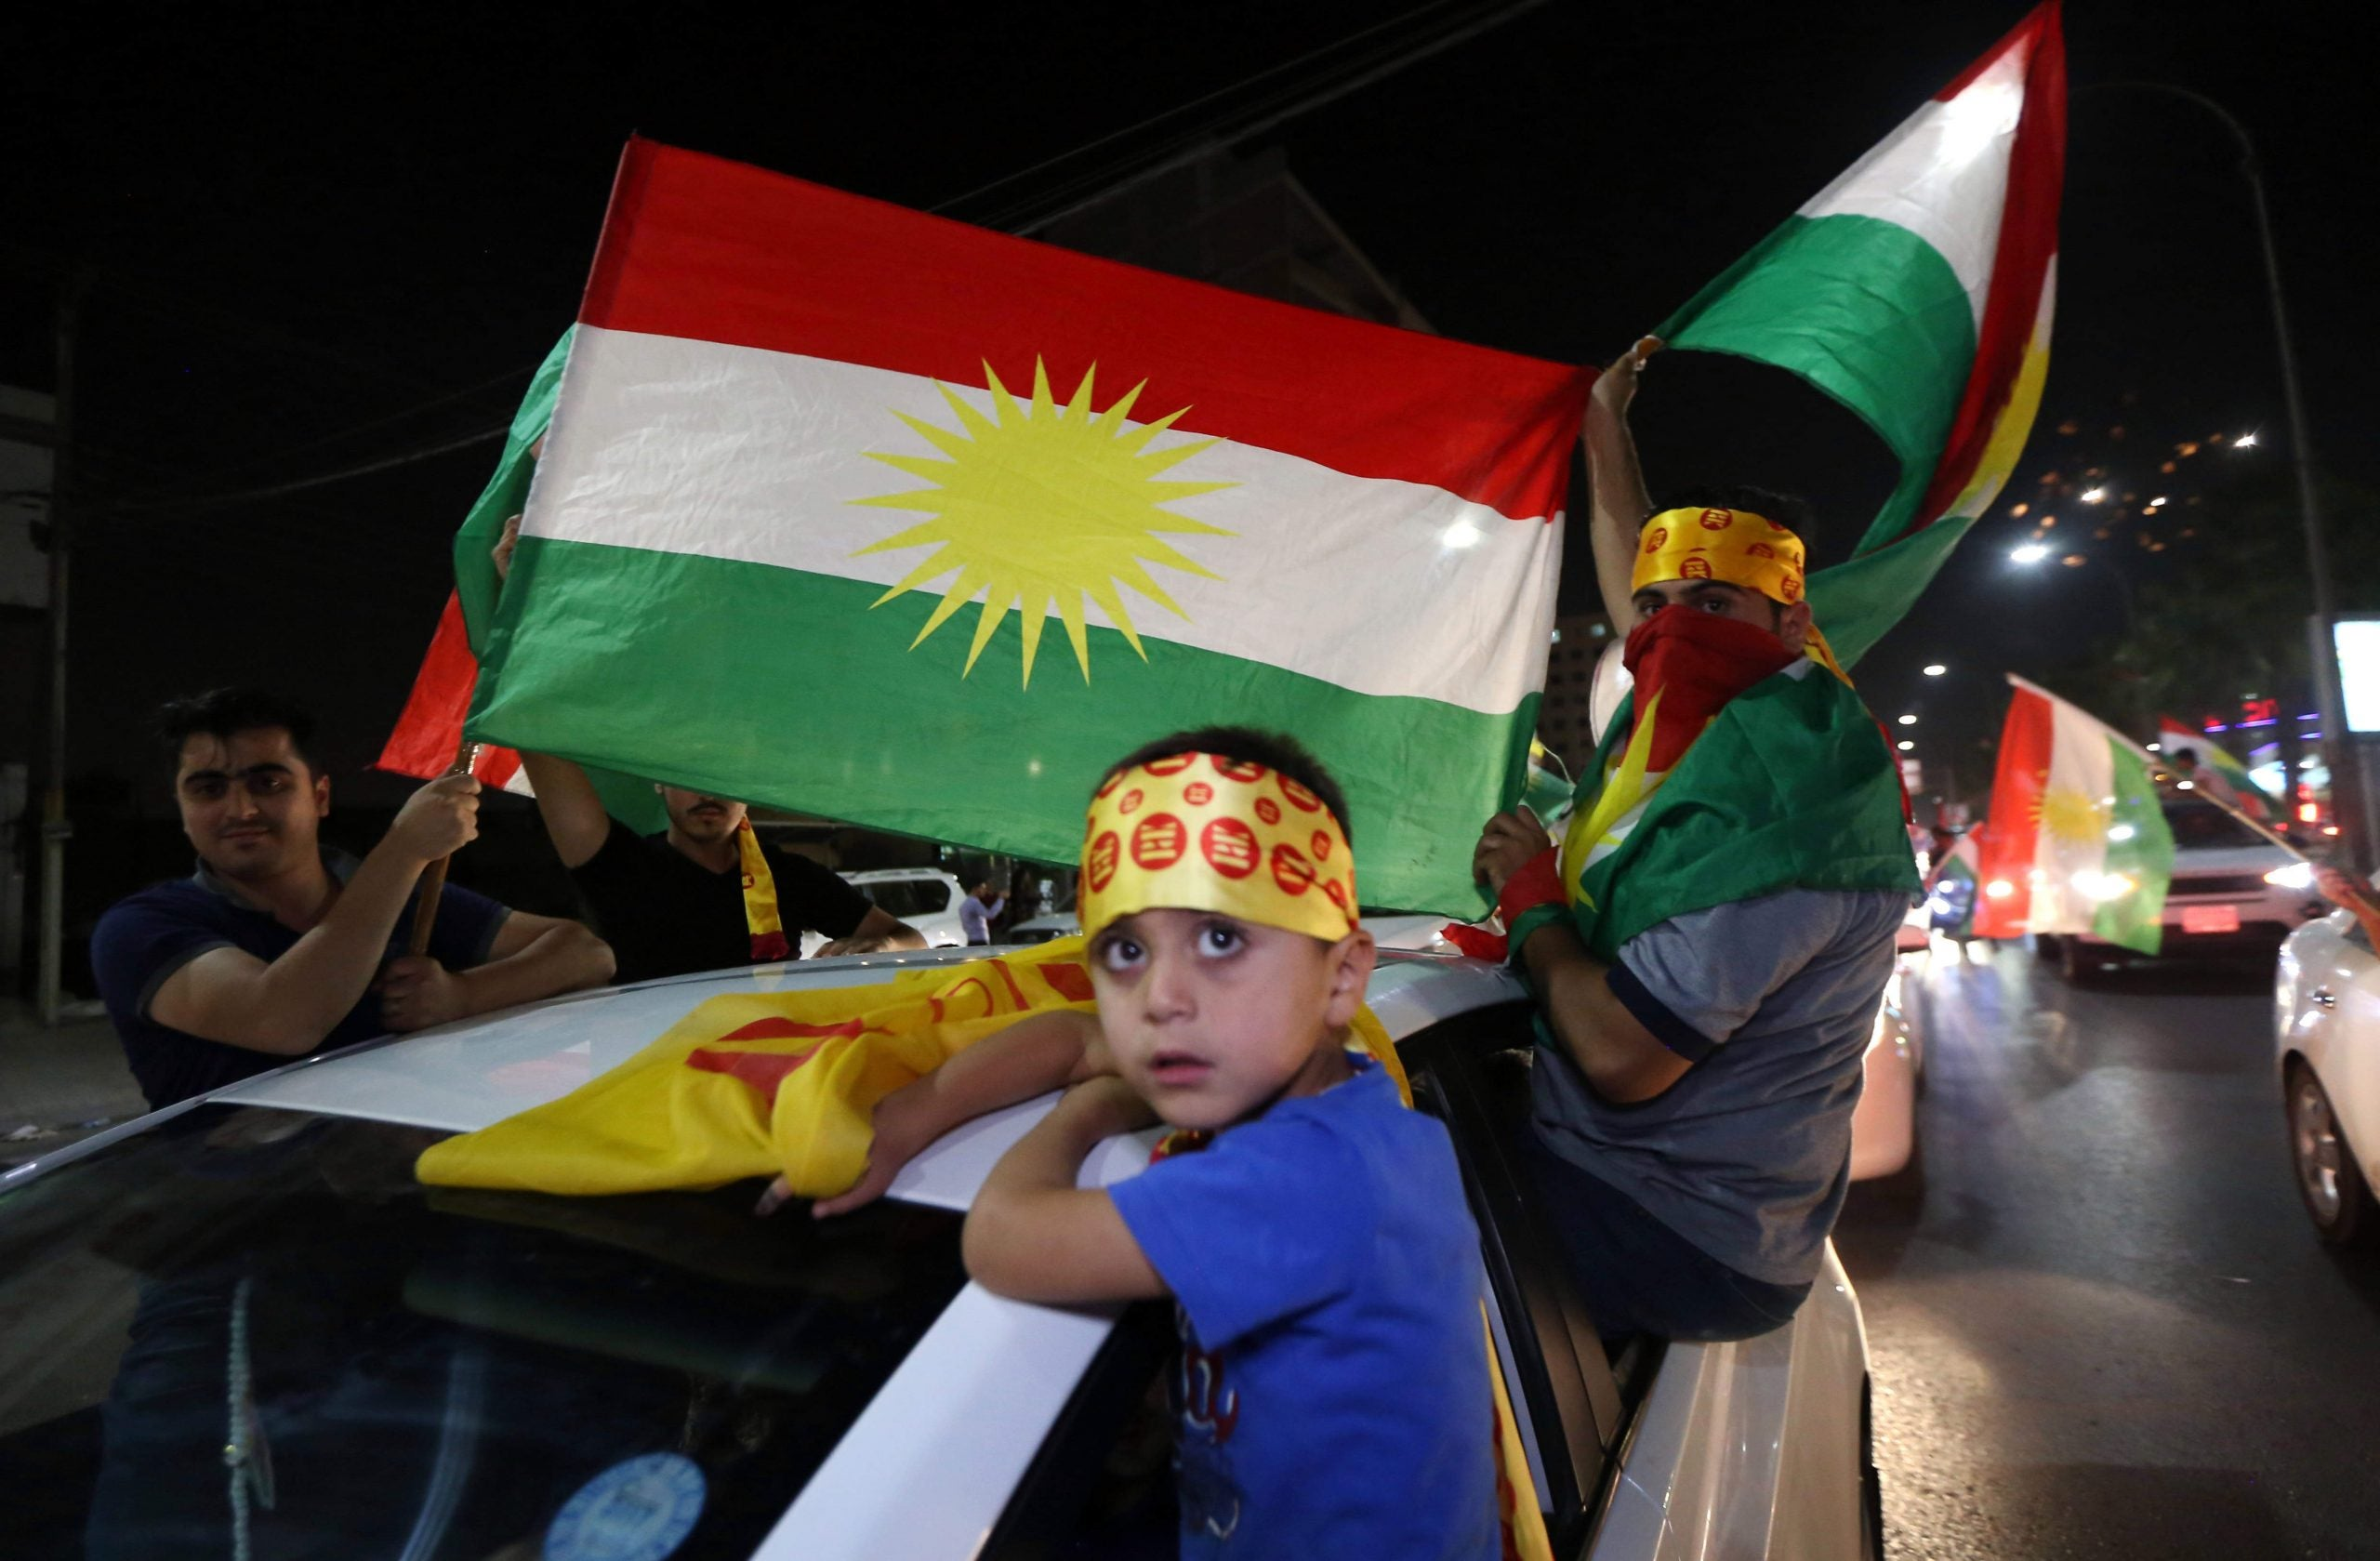 Iraq's ancient splits widen: why the Kurds voted to secede